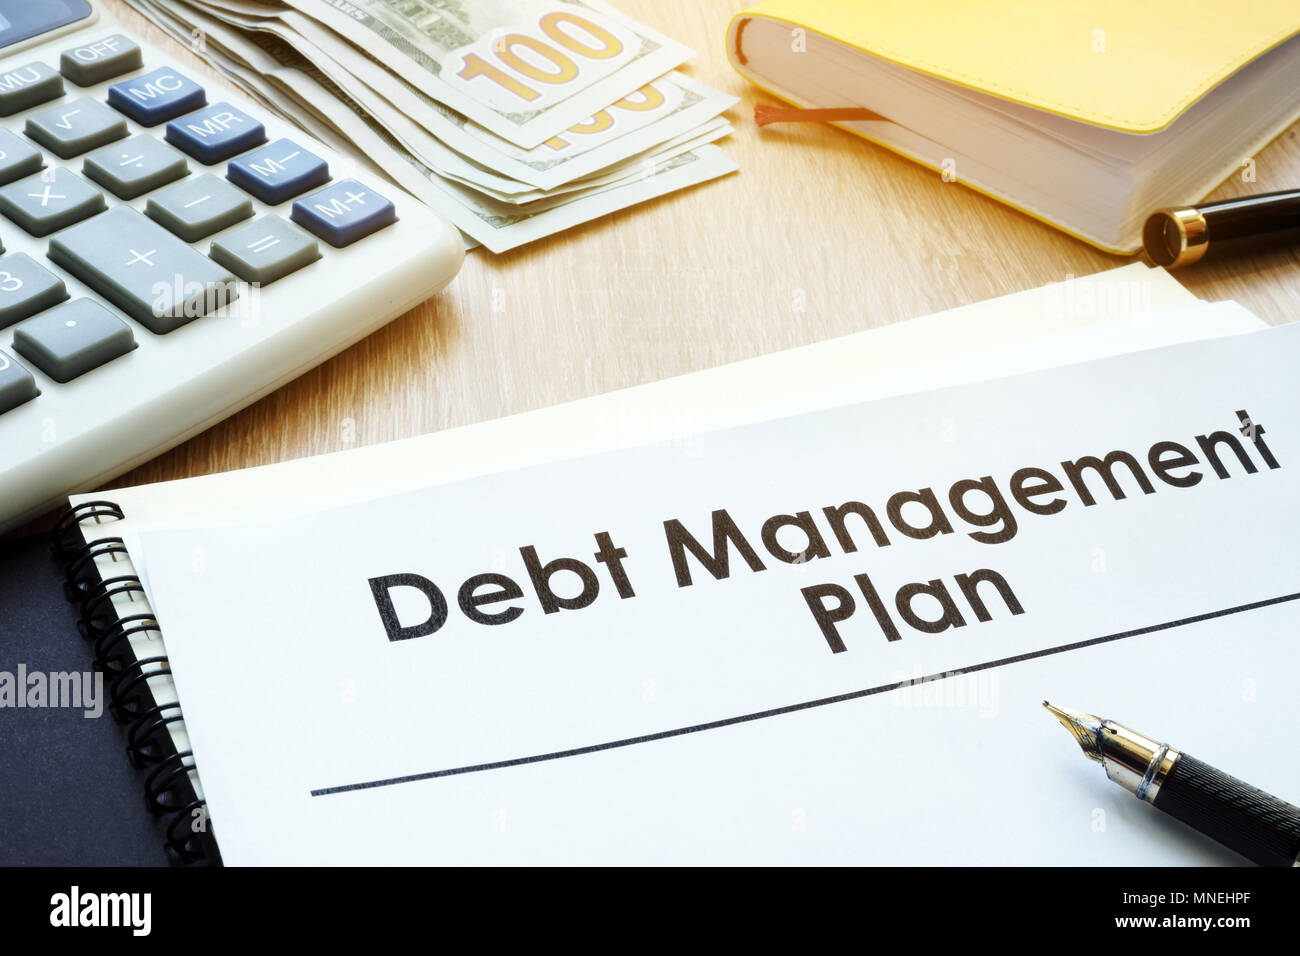 Debt Management Plan on a table. - Stock Image